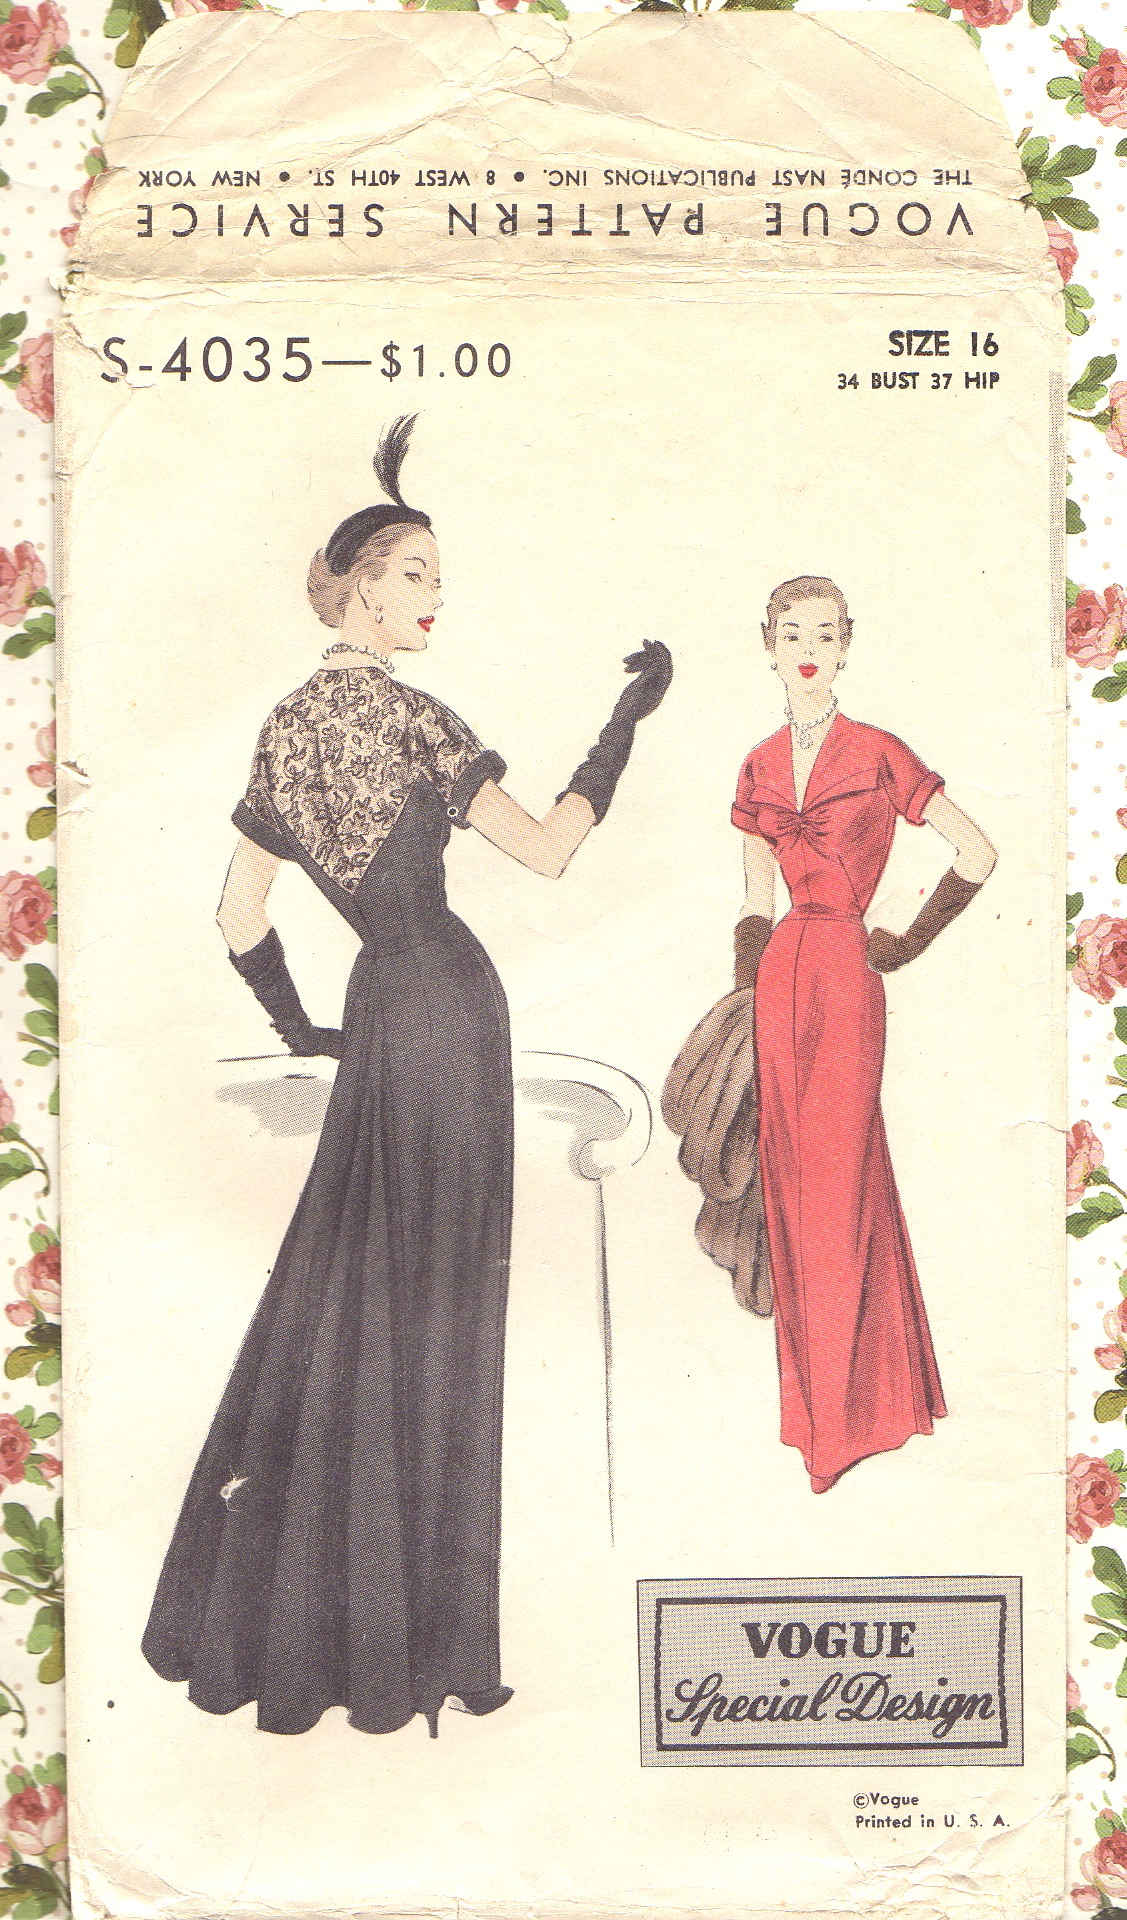 Vogue S-4035 | Vintage Sewing Patterns | FANDOM powered by Wikia